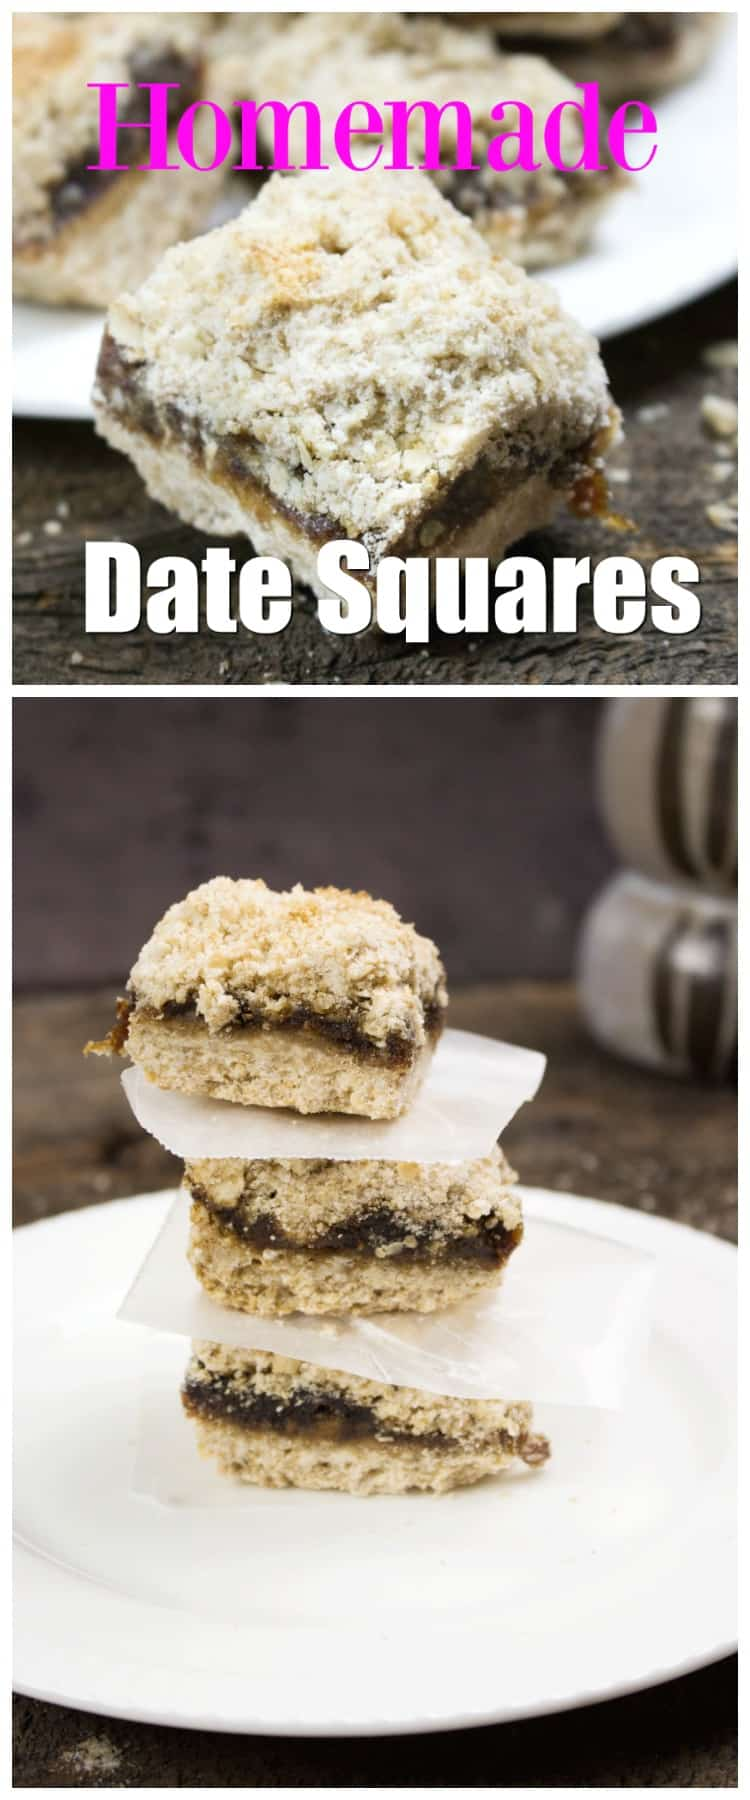 This homemade date squares recipe is a vegan dessert packed with the sweetness of dates combined with a crunchy & crumbly topping is a long standing family favorite. One of these these yummy Date Squares warm from the oven & a glass of milk makes a great afternoon snack. This recipe is so easy & freezes well too!